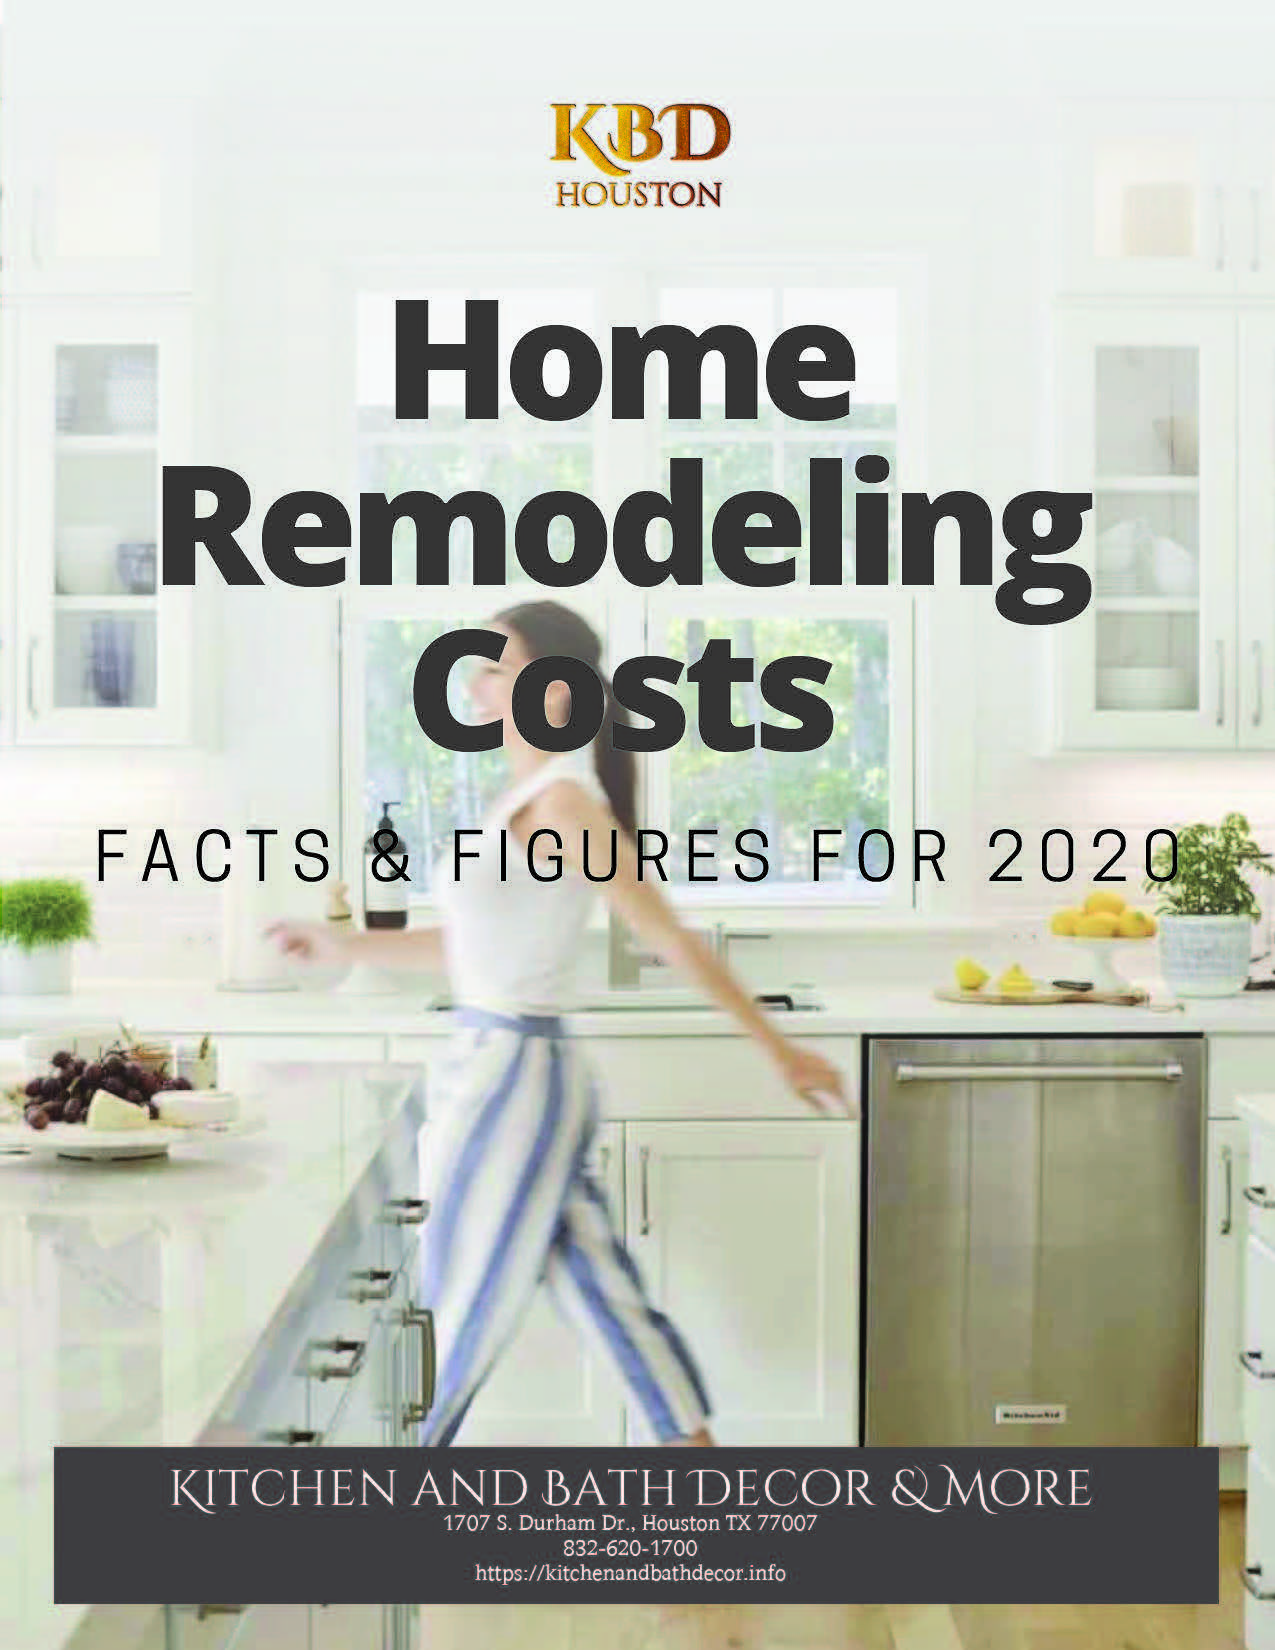 Download the Houston Home Remodeling Costs Guide